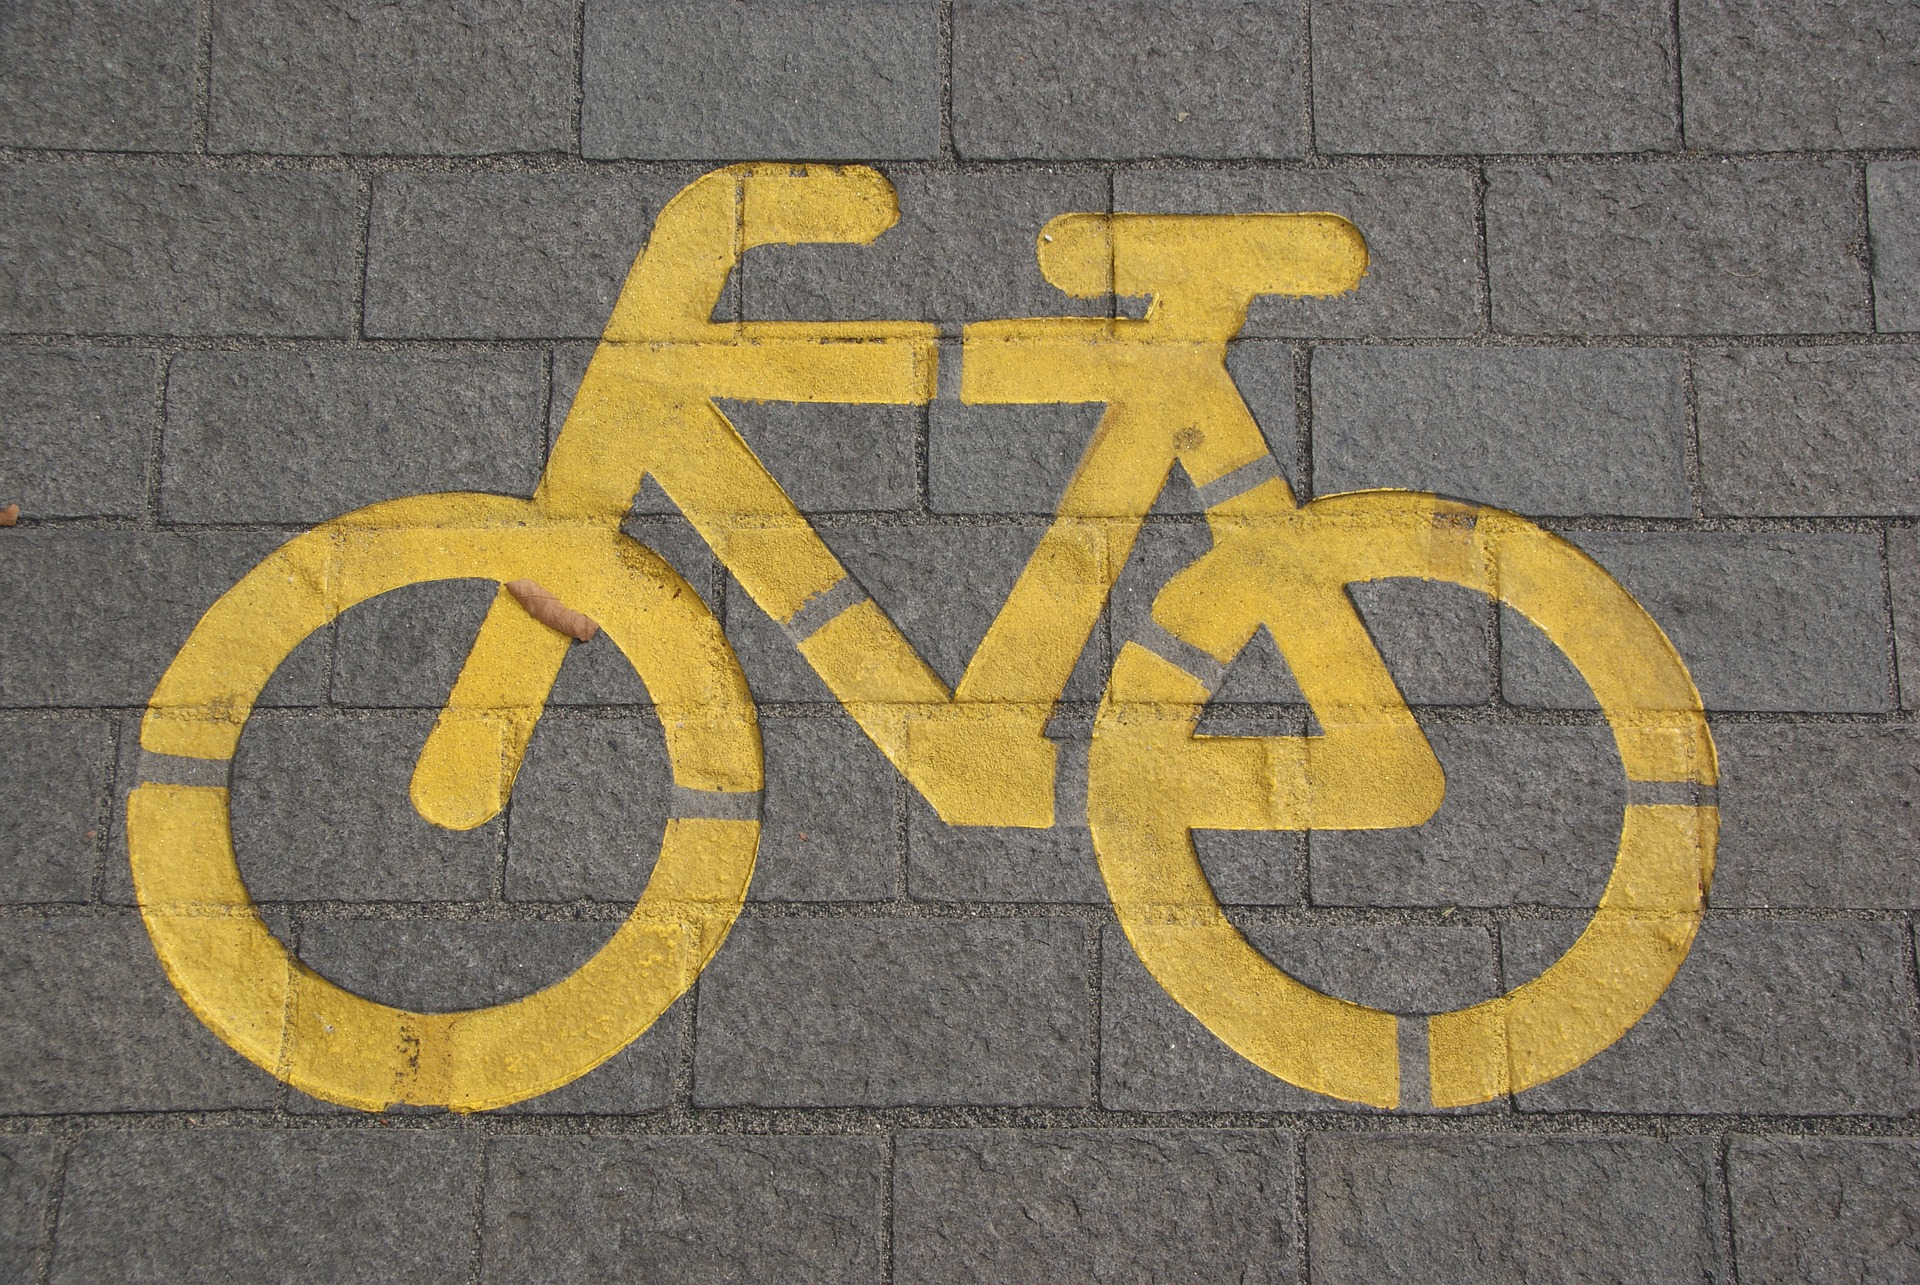 image of a bicycle